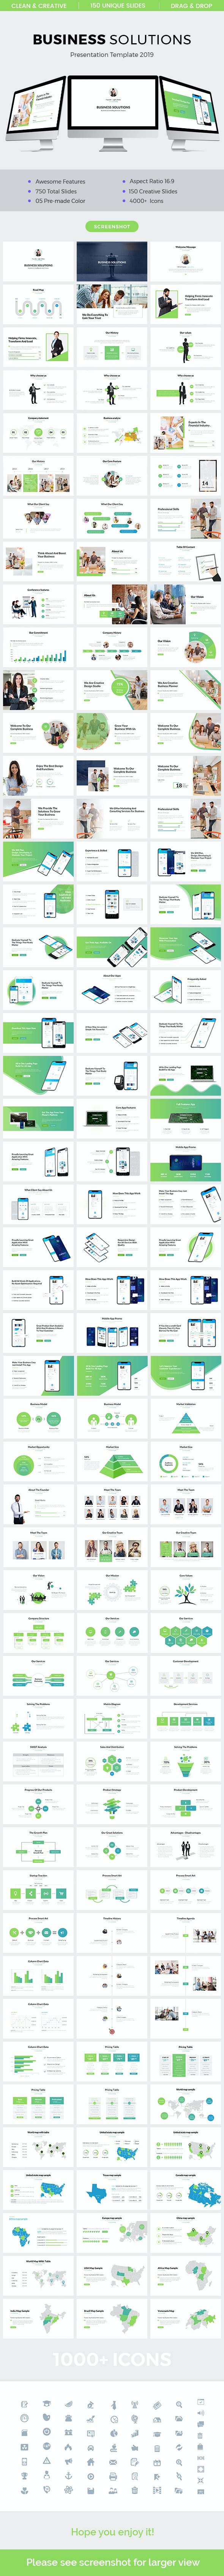 Business Solutions Keynote Template 2019 - Business Keynote Templates